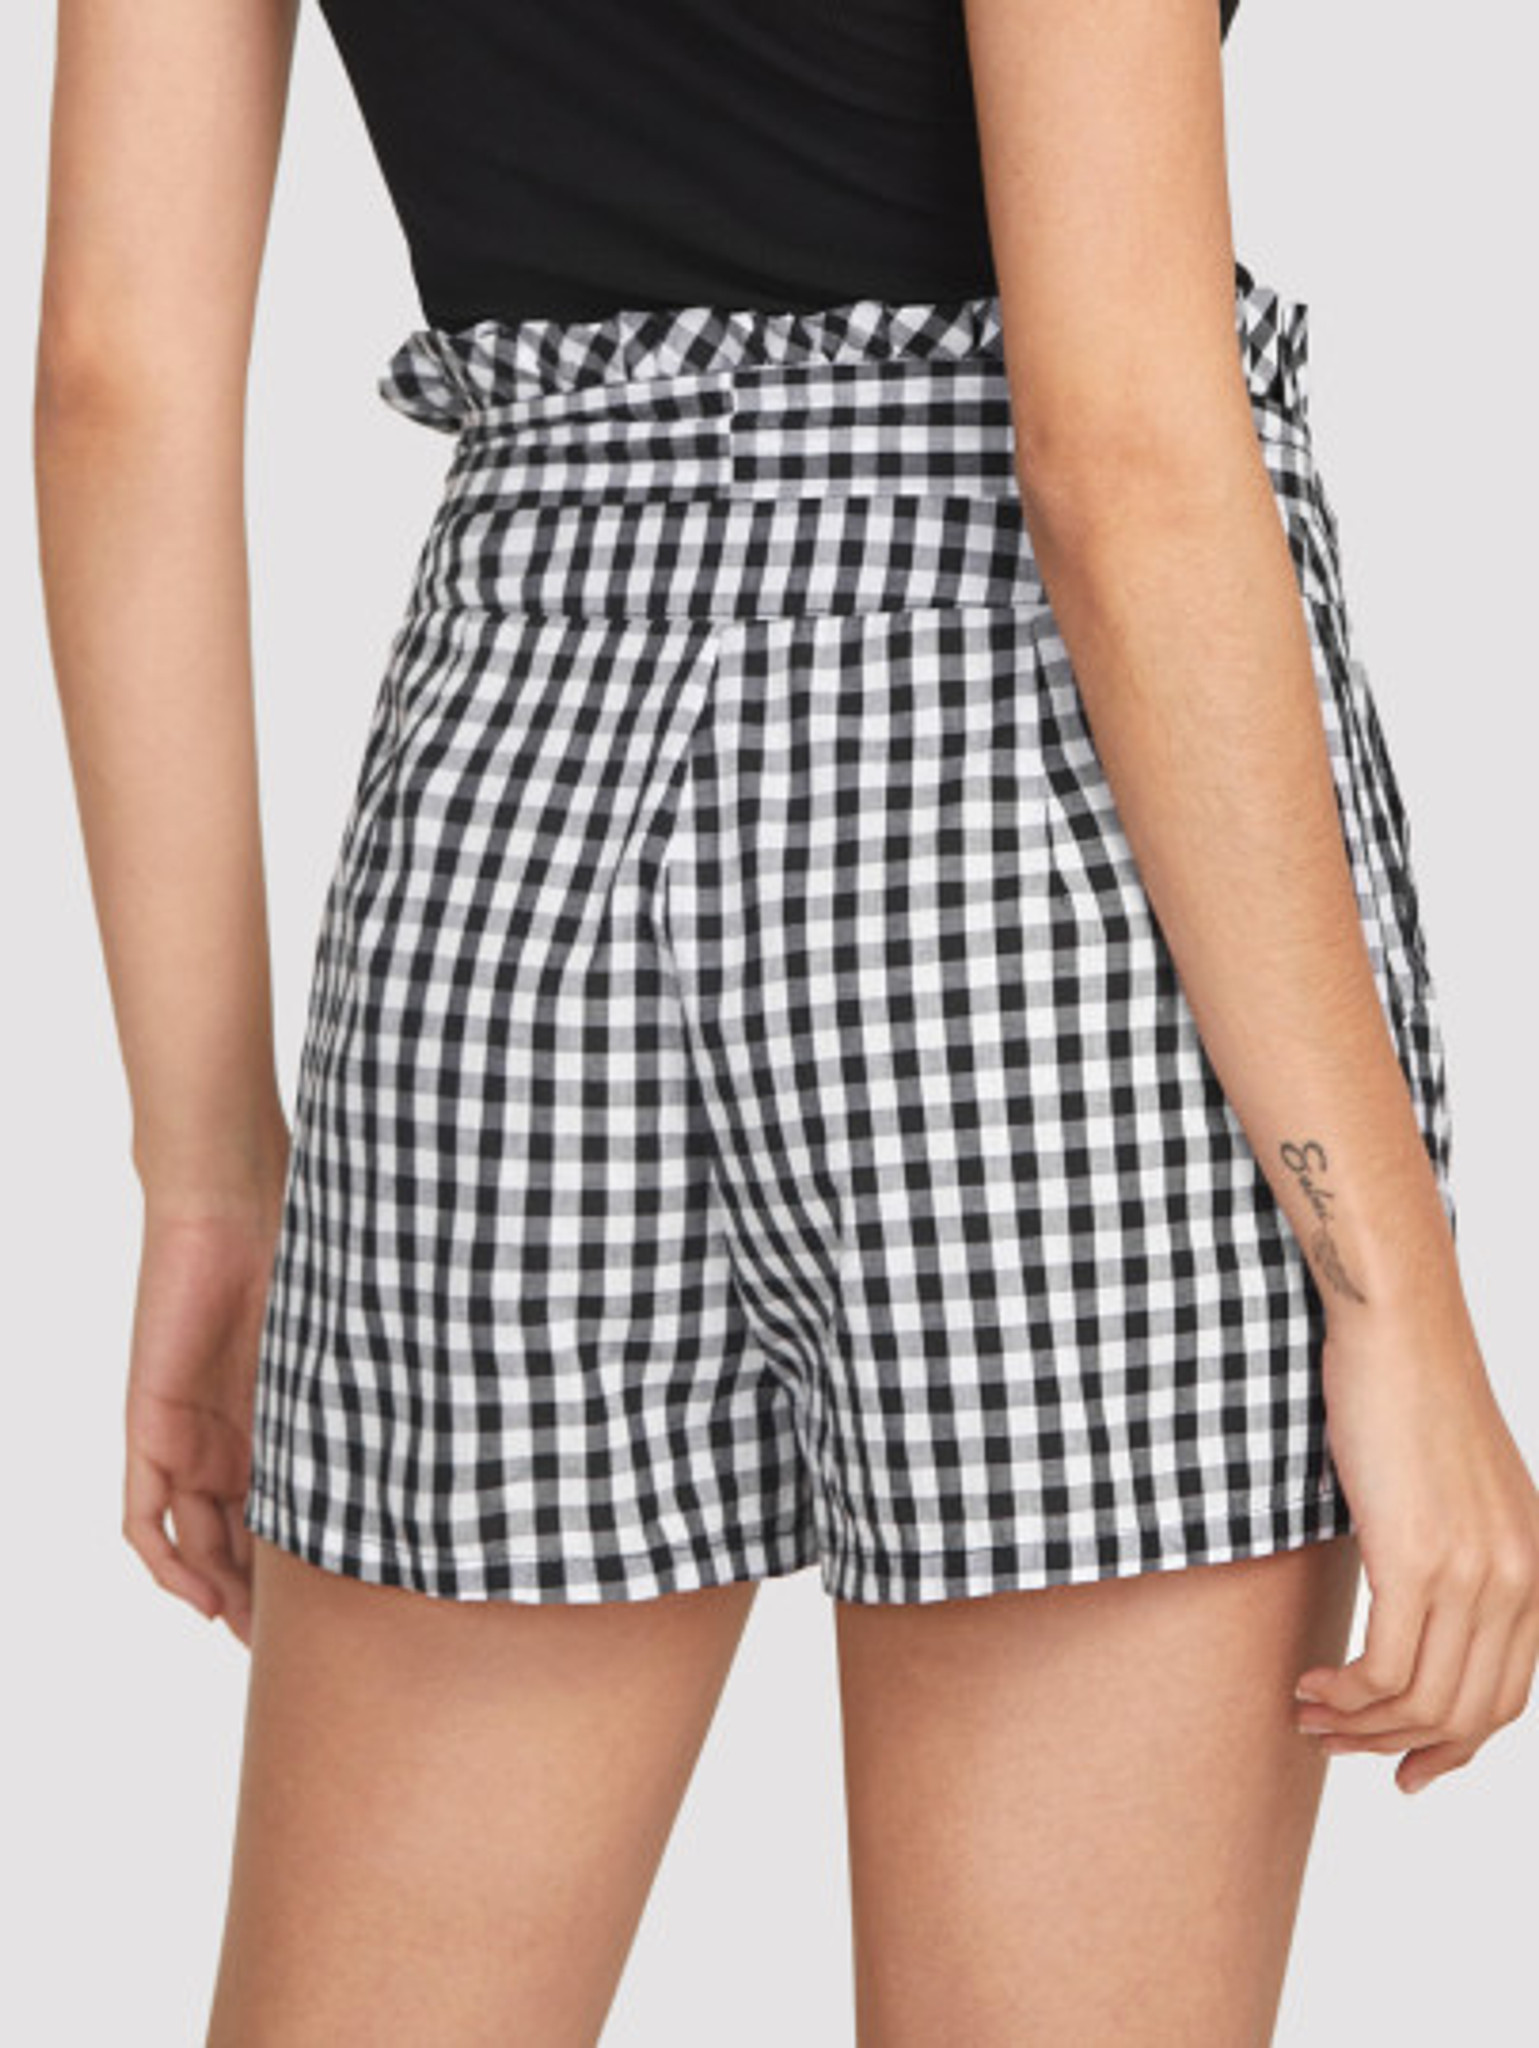 Fifth Avenue Women's Frill Waist Gingham Shorts - Black and White